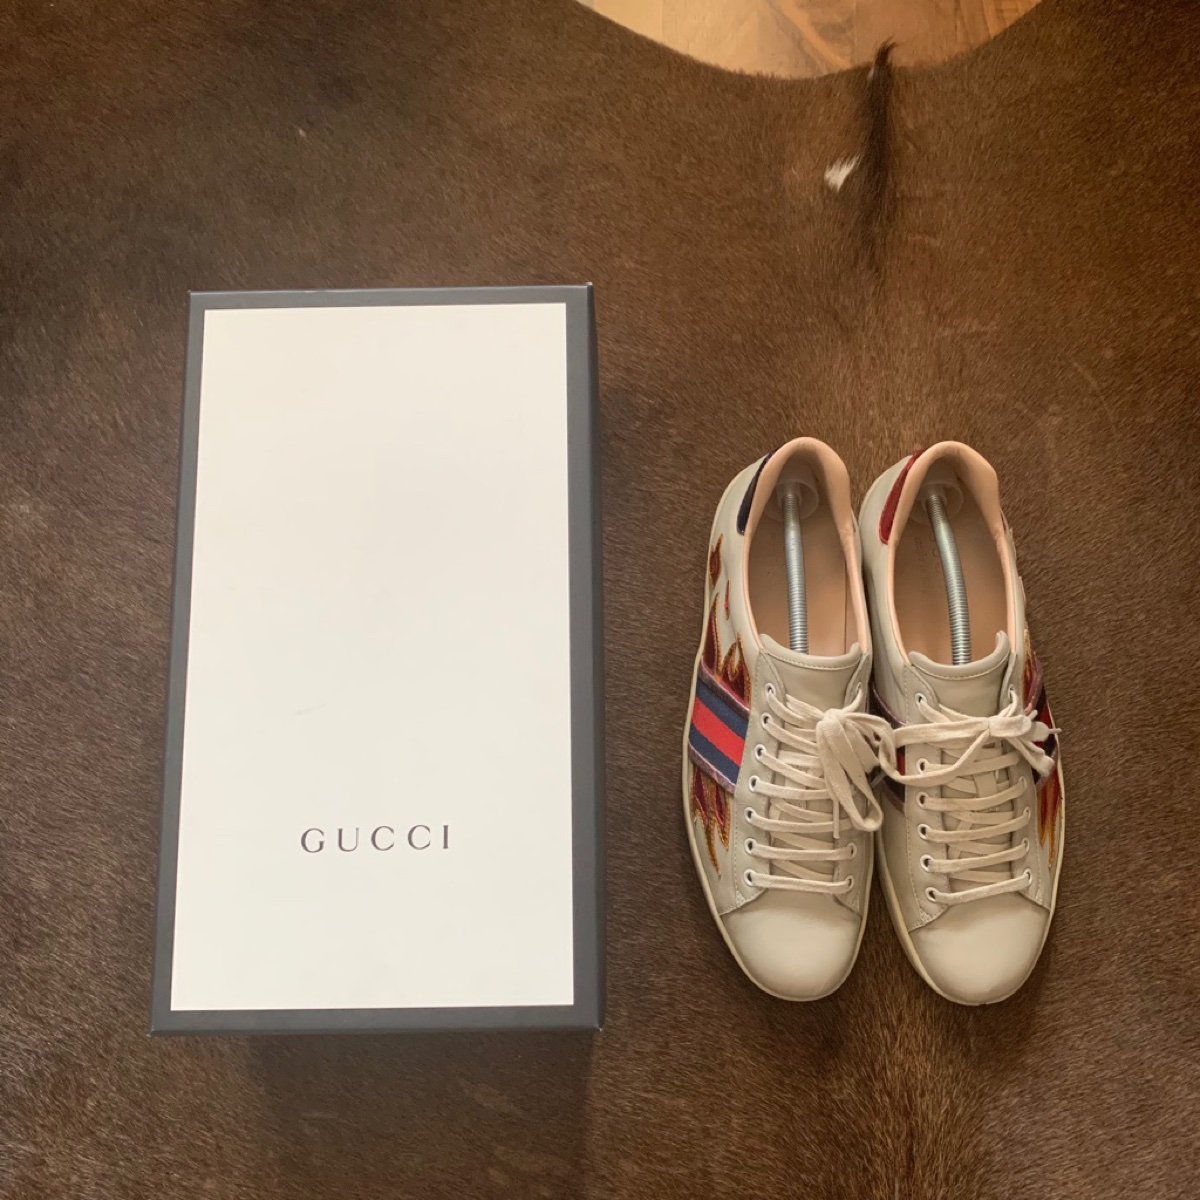 Gucci Ace Sneaker with Flames size: Gucci 10